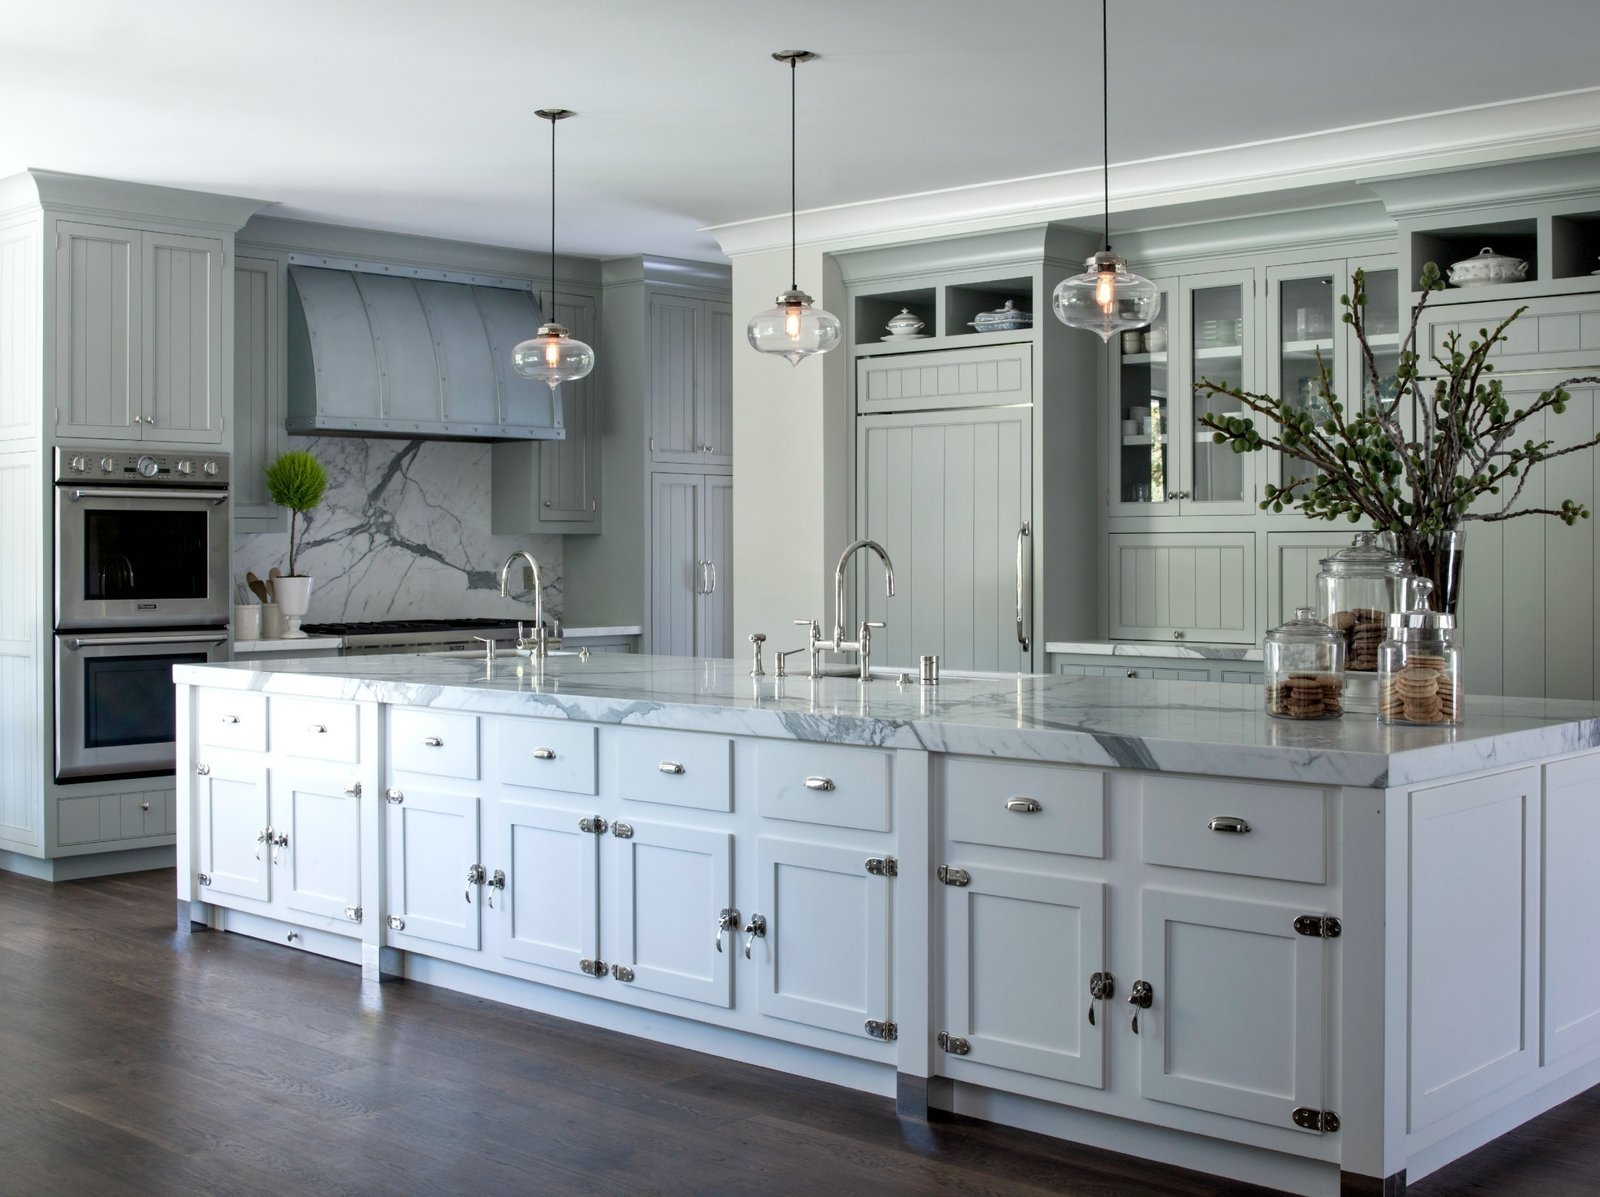 modern farmhouse incorporates contemporary kitchen island pendant lighting - Farmhouse Kitchen Island